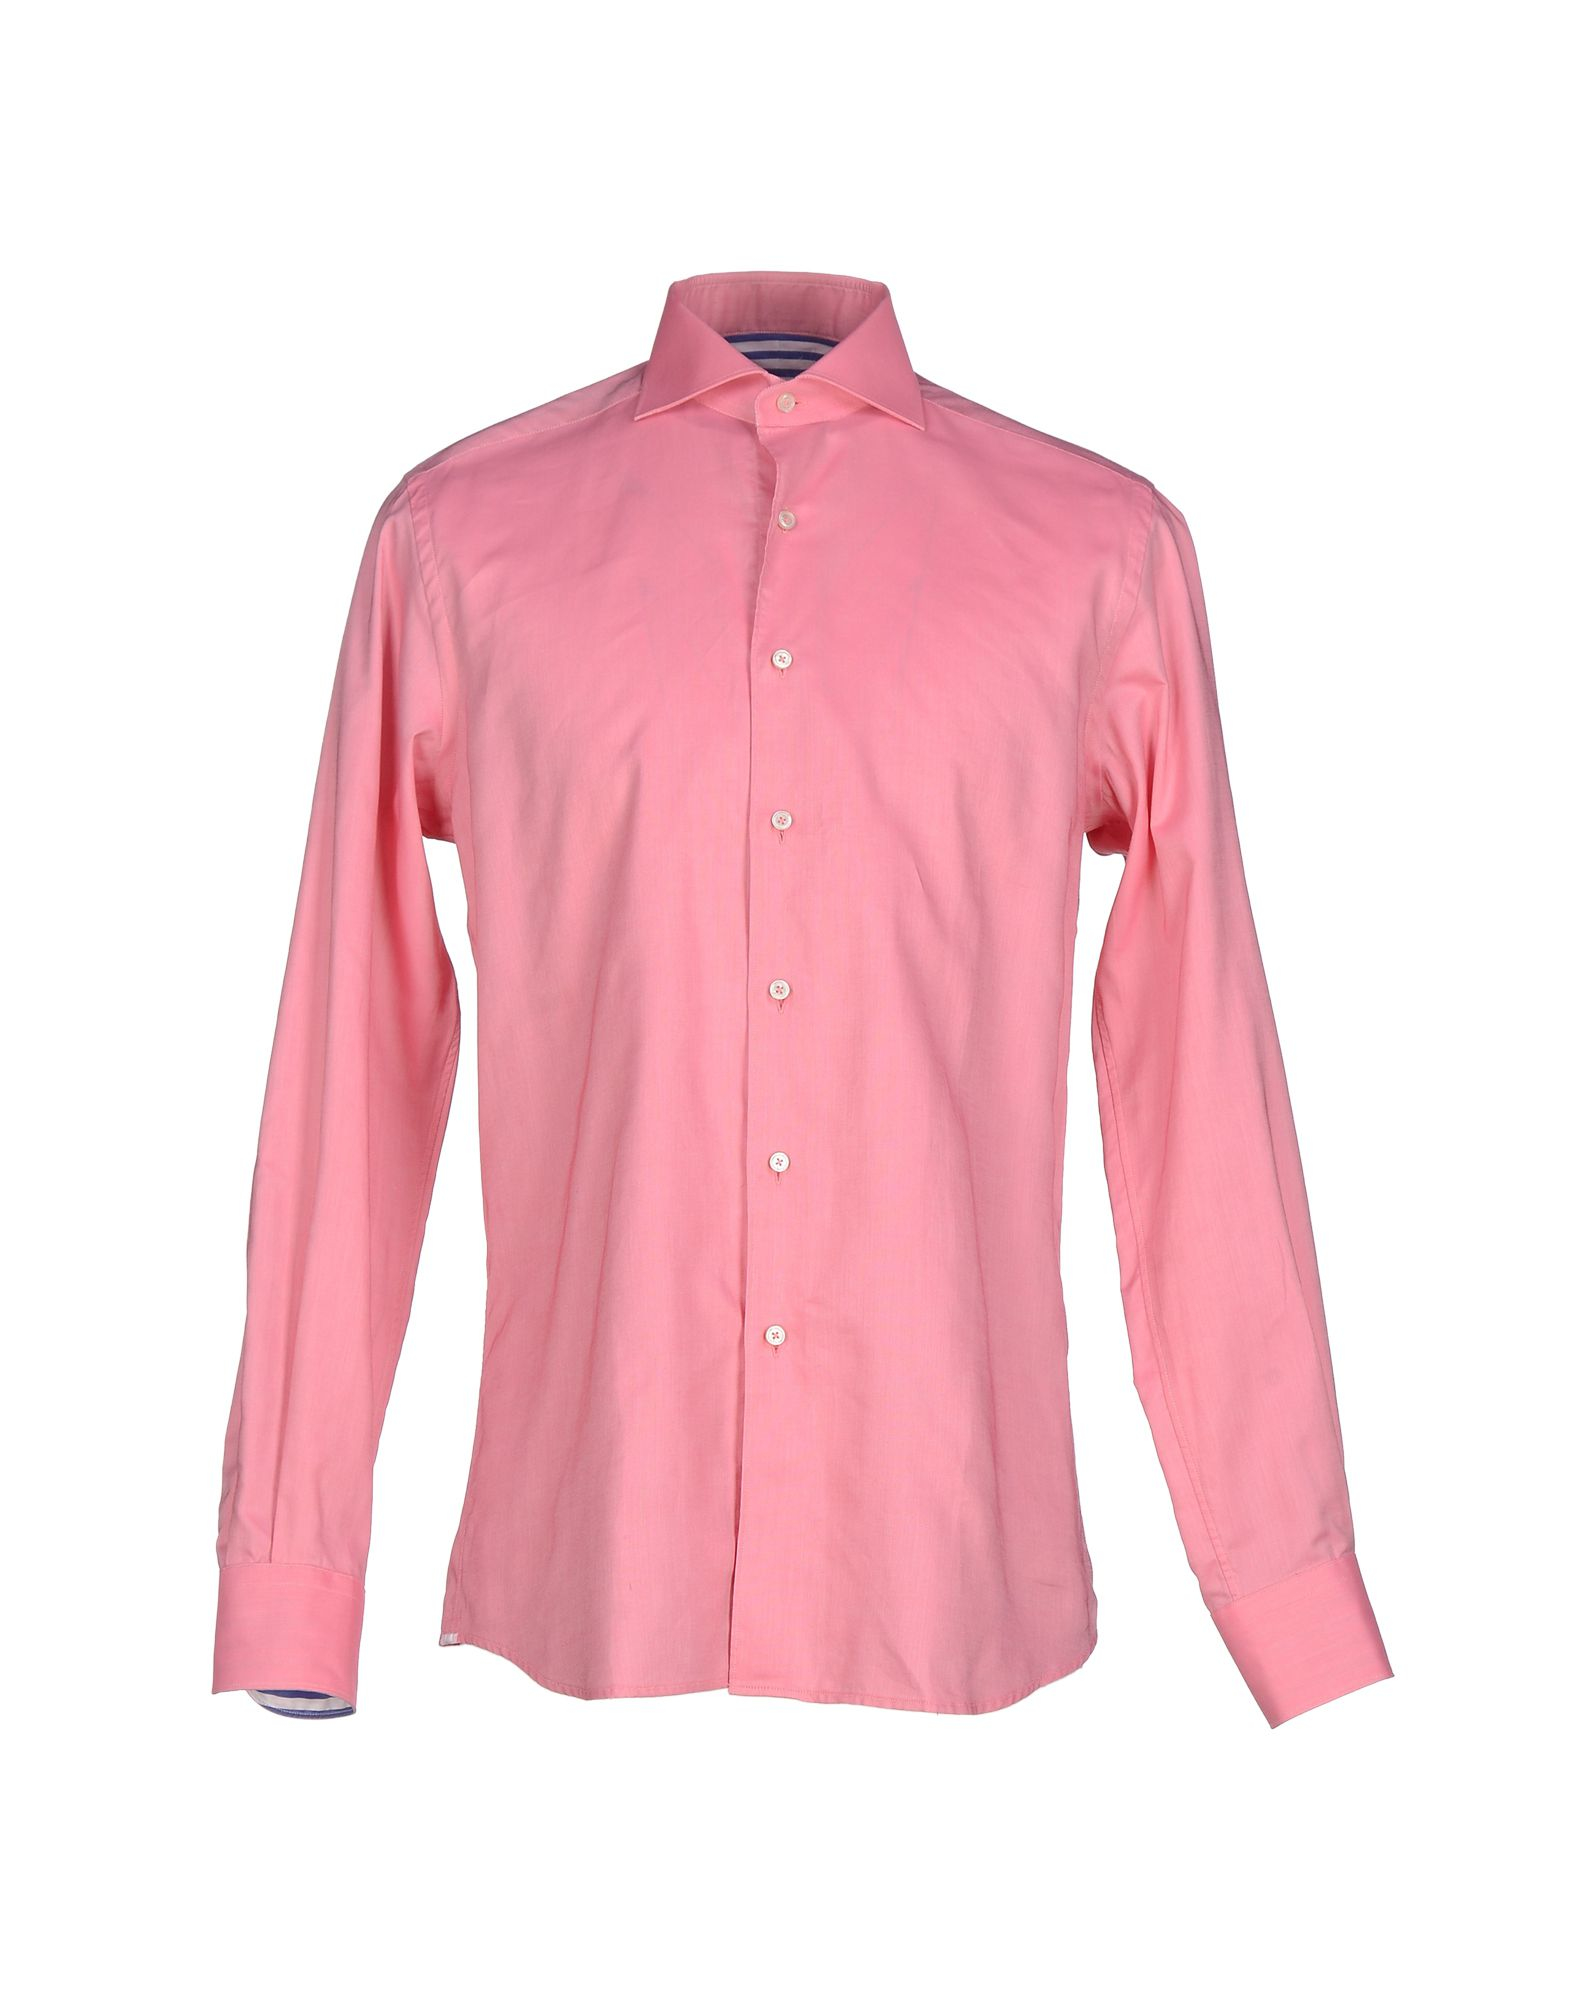 Xacus shirt in pink for men light purple lyst Light purple dress shirt men